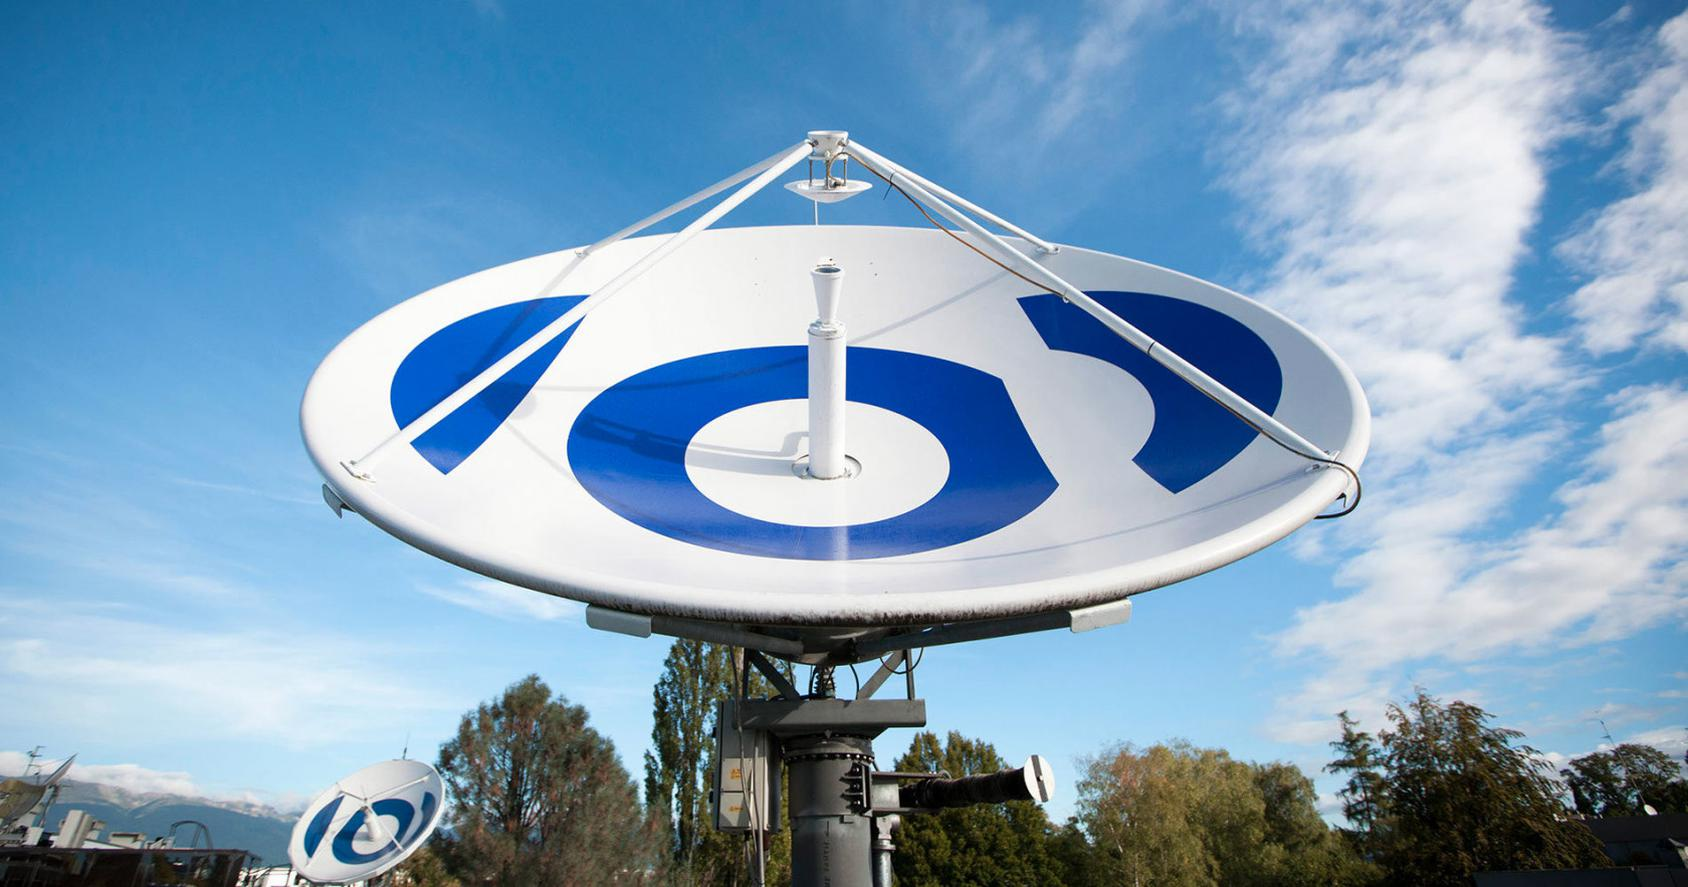 EMS Promotes Content Security And Rights Management With New Upgrades To The Eurovision Global Network